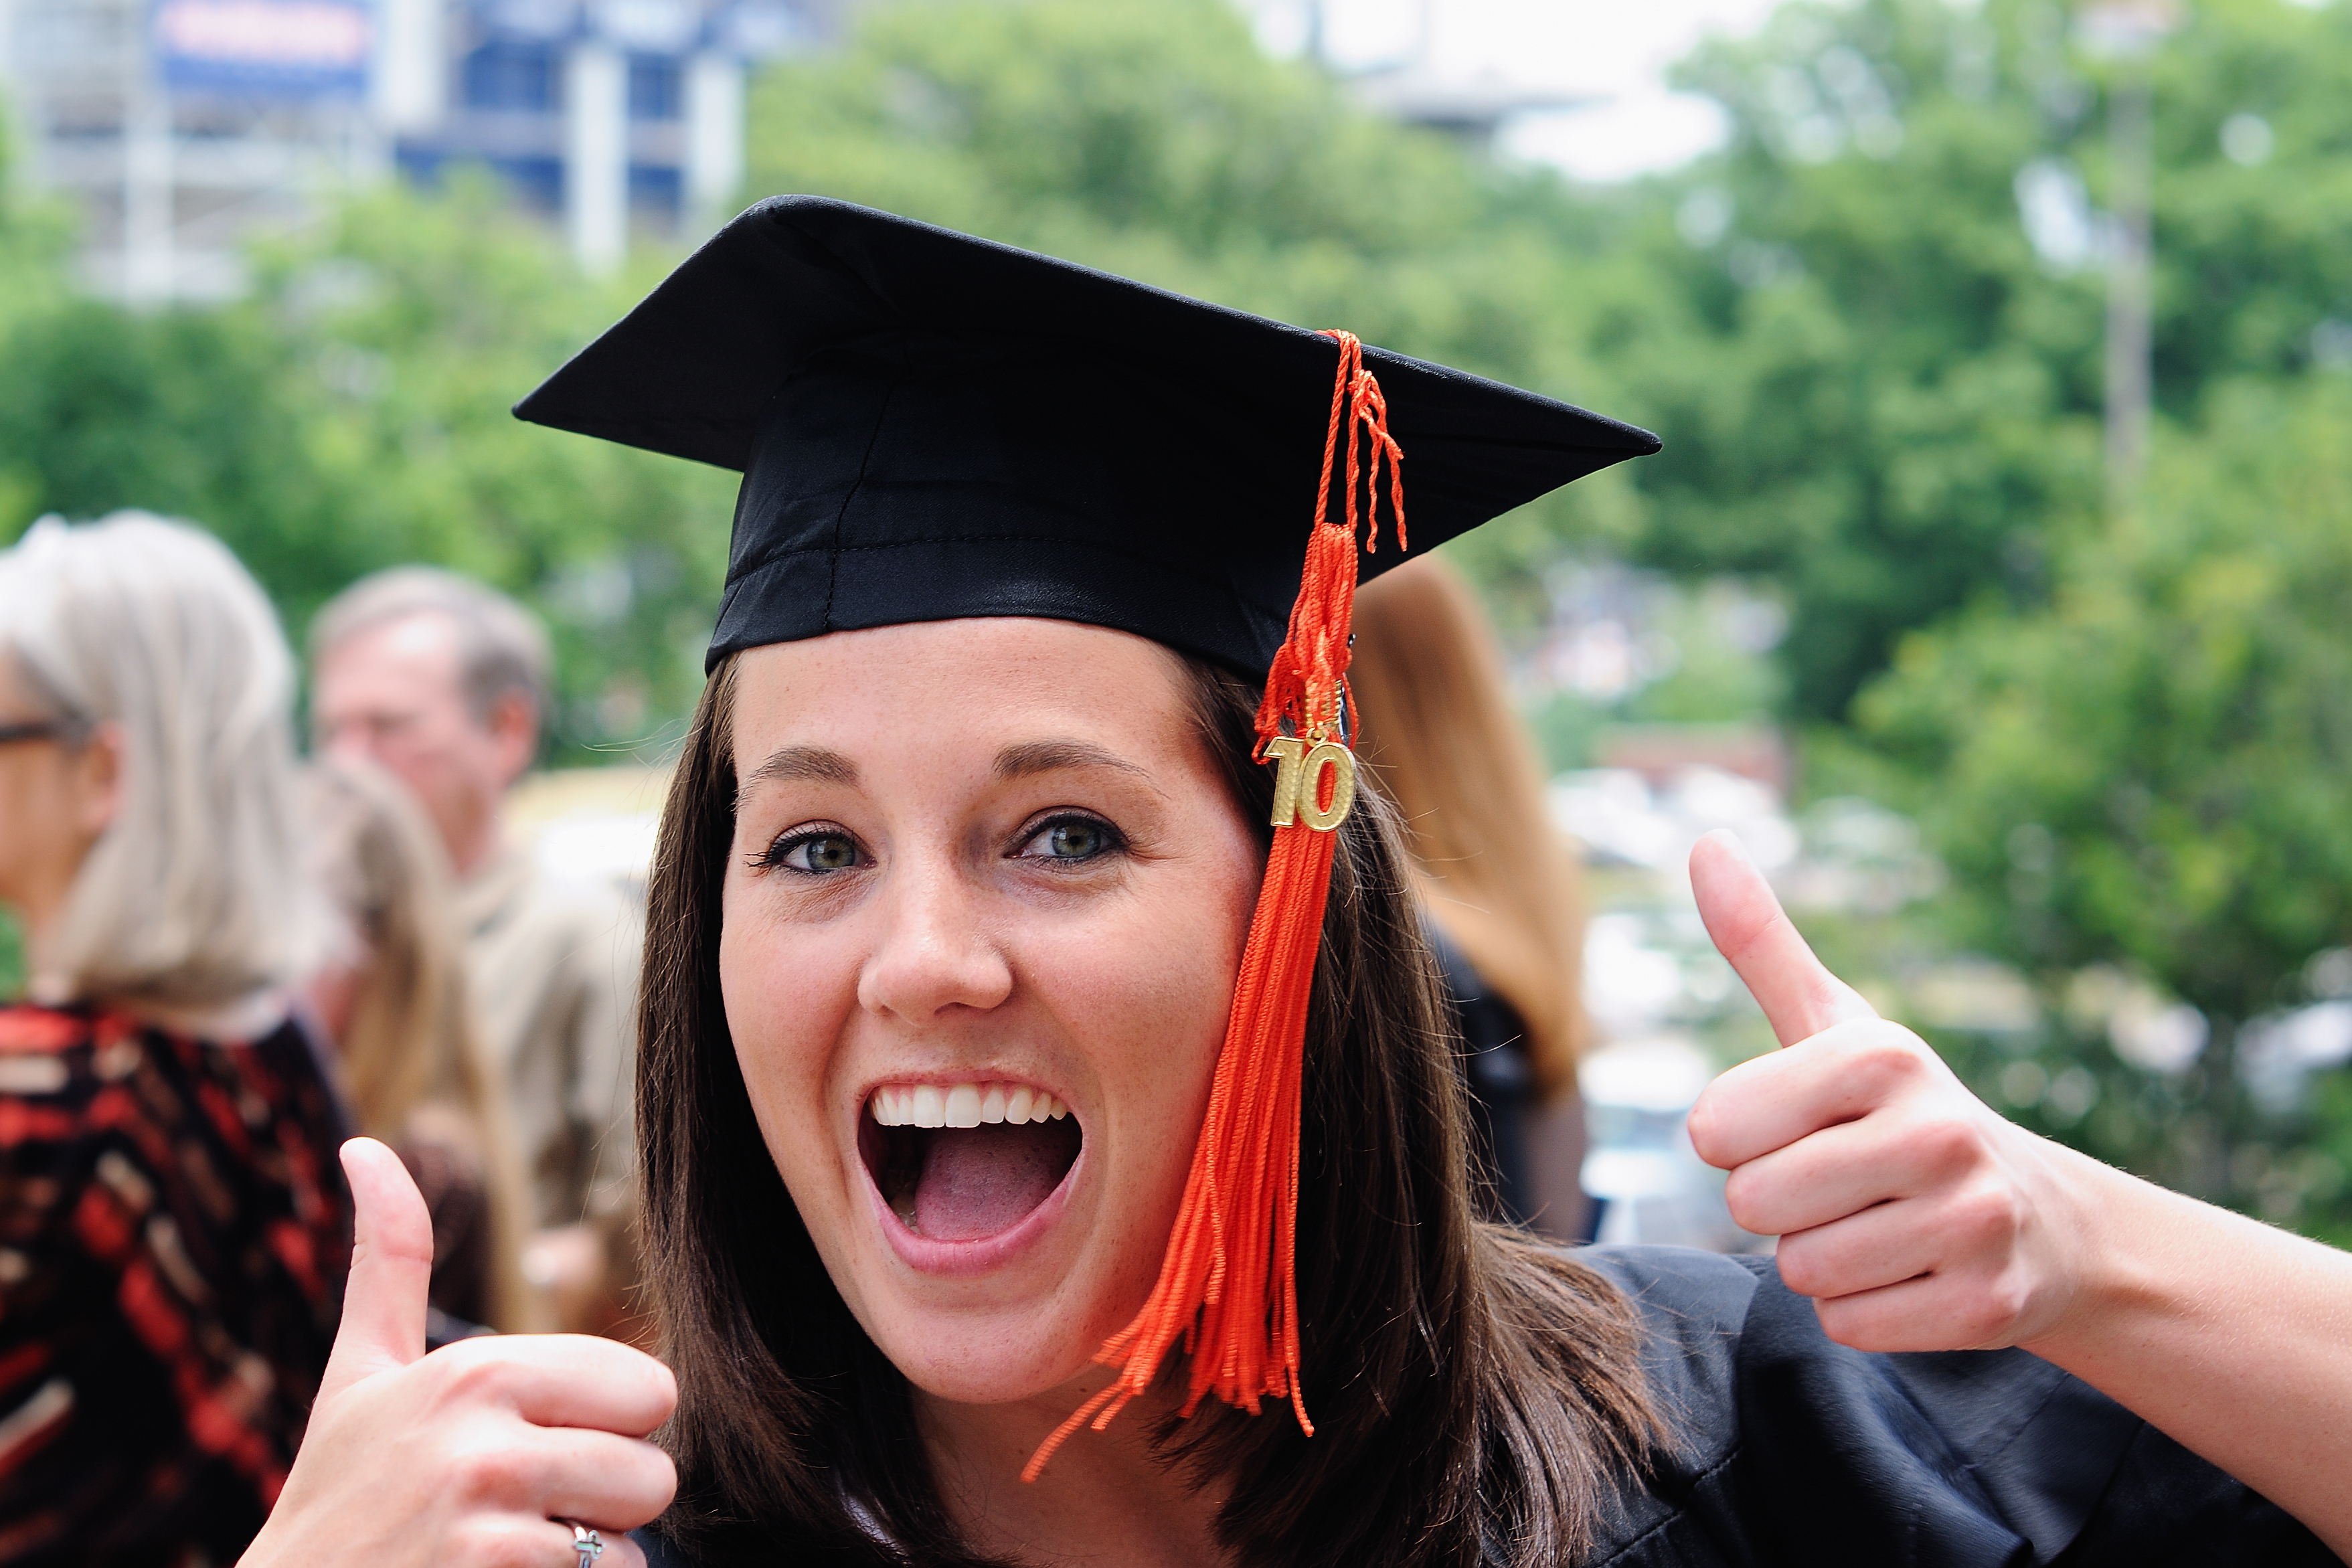 A picture of a lady in a cap in gown giving the thumbs-up sign